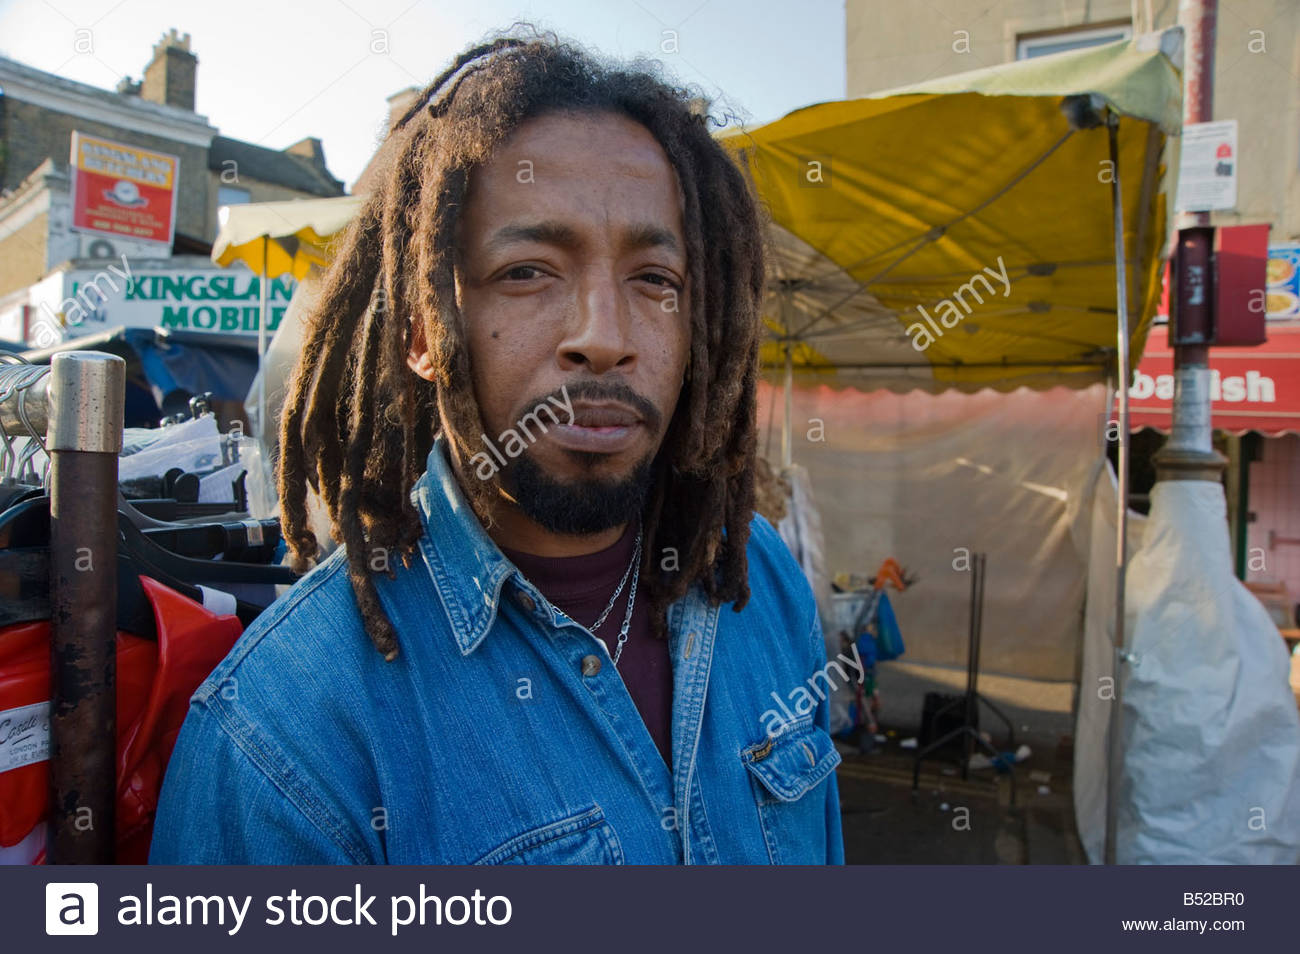 A Senegalese rasta man with dreadlocks looks into the camera at Ridley road market Dalston Hackney East London - Stock Image